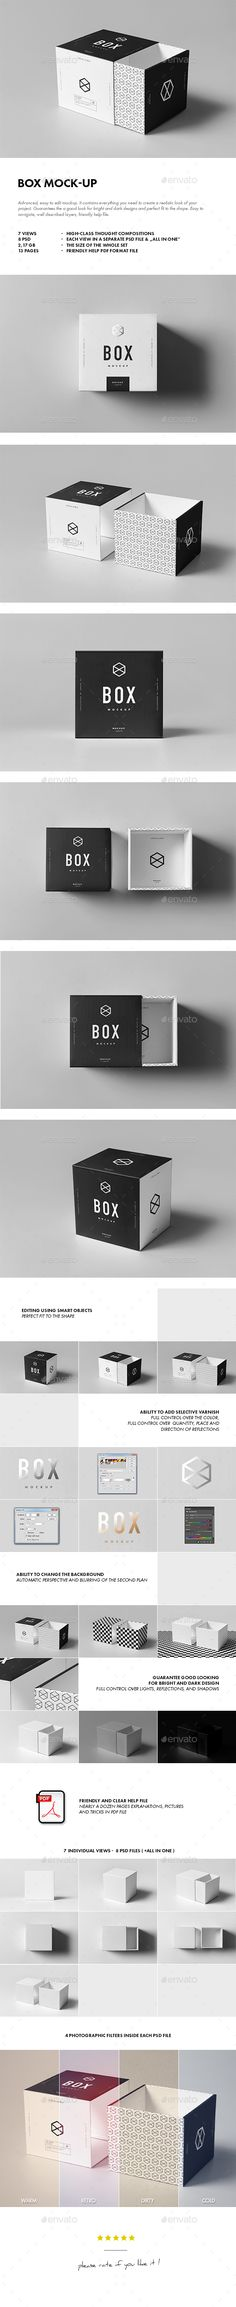 #box #mock-up #packaging